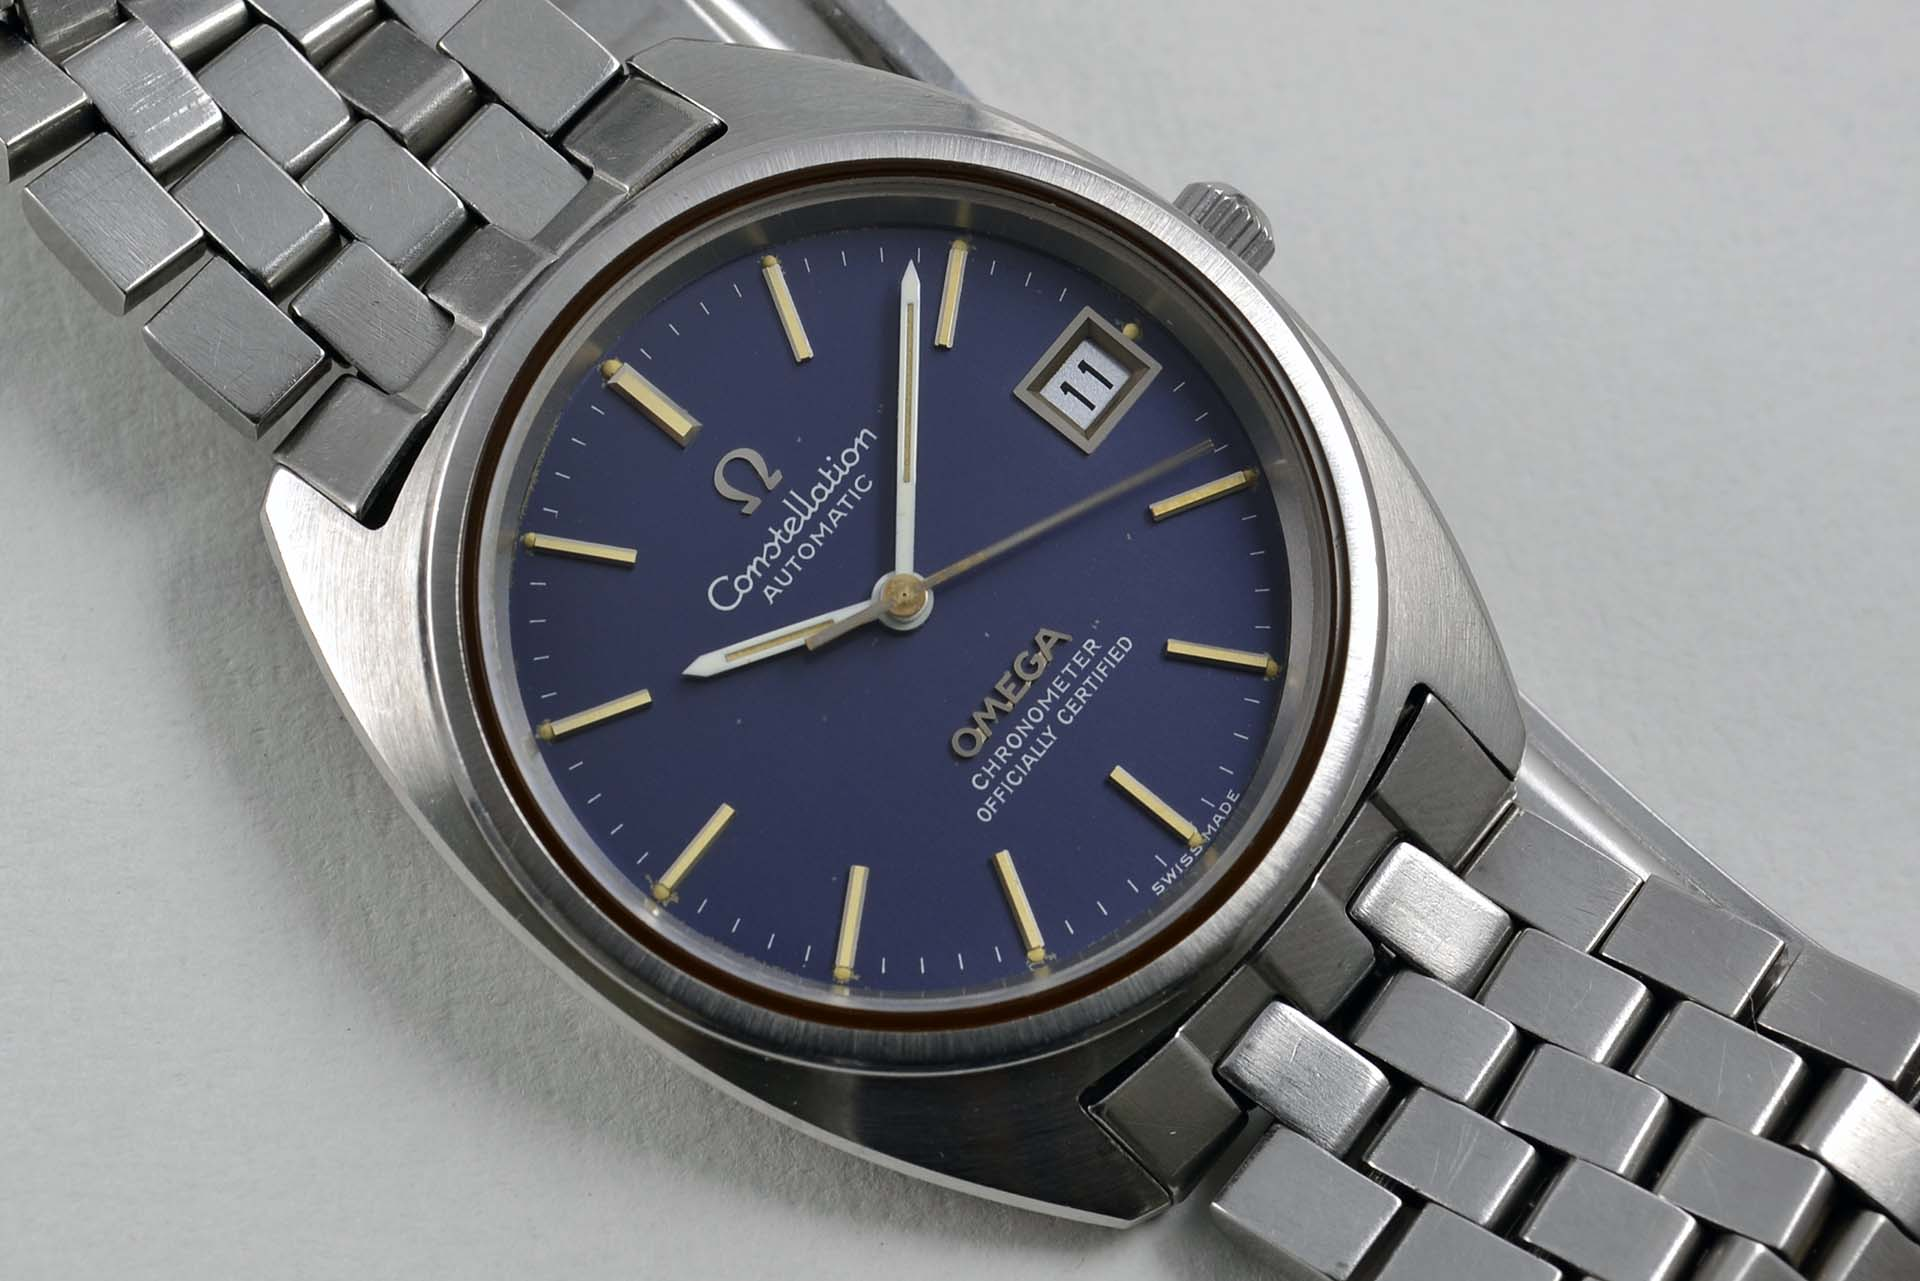 Omega Constellation C Shape Bleu 168.0056 early 1970 - LumeVille